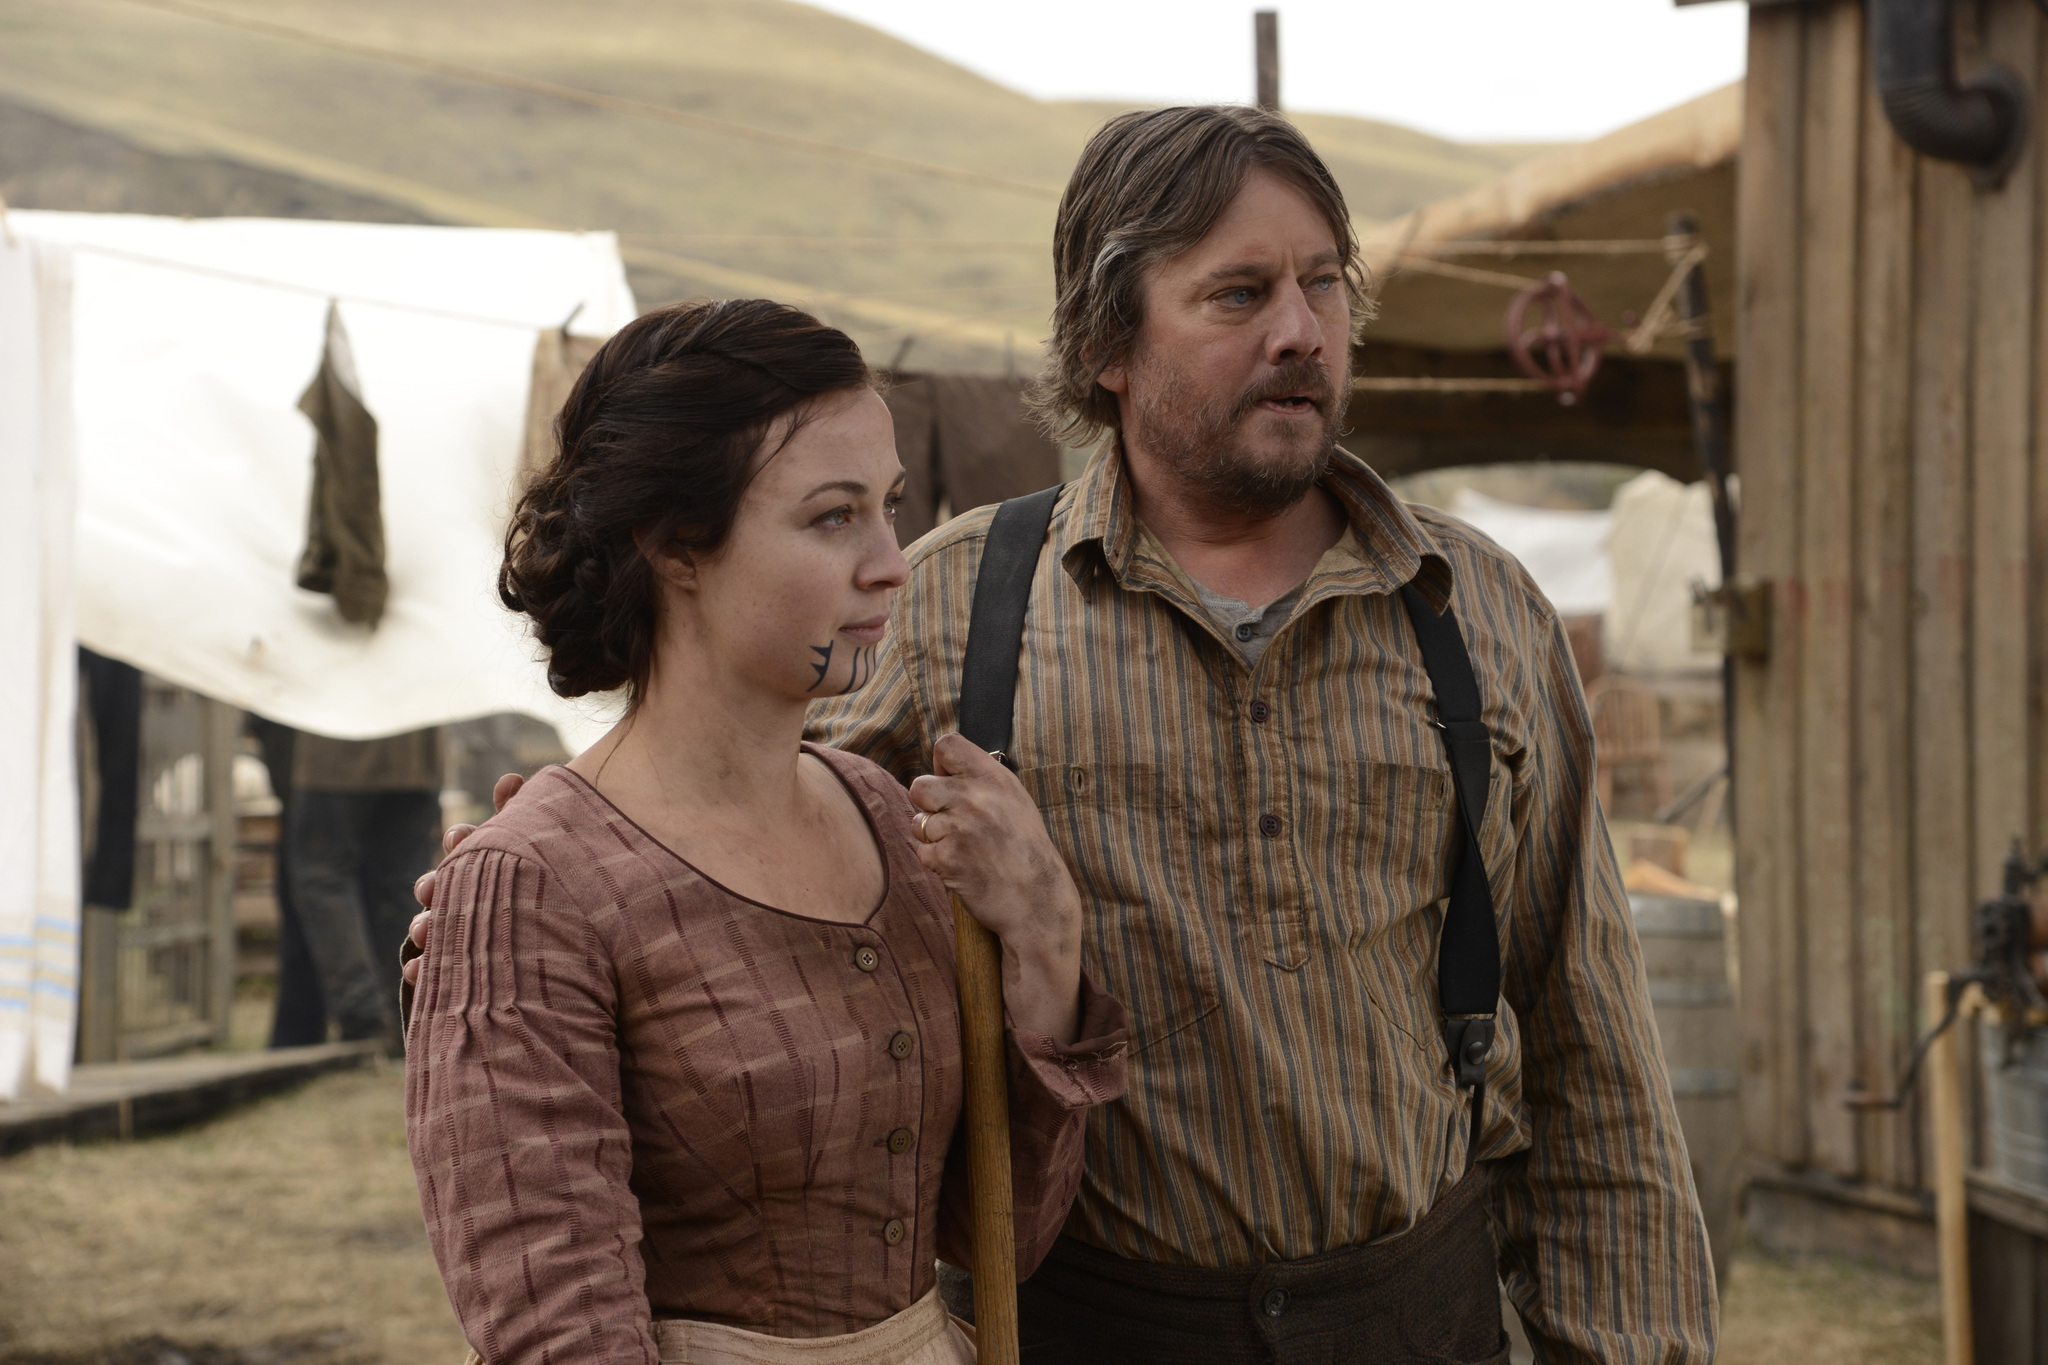 Duncan Ollerenshaw and Robin McLeavy in Hell on Wheels (2011)